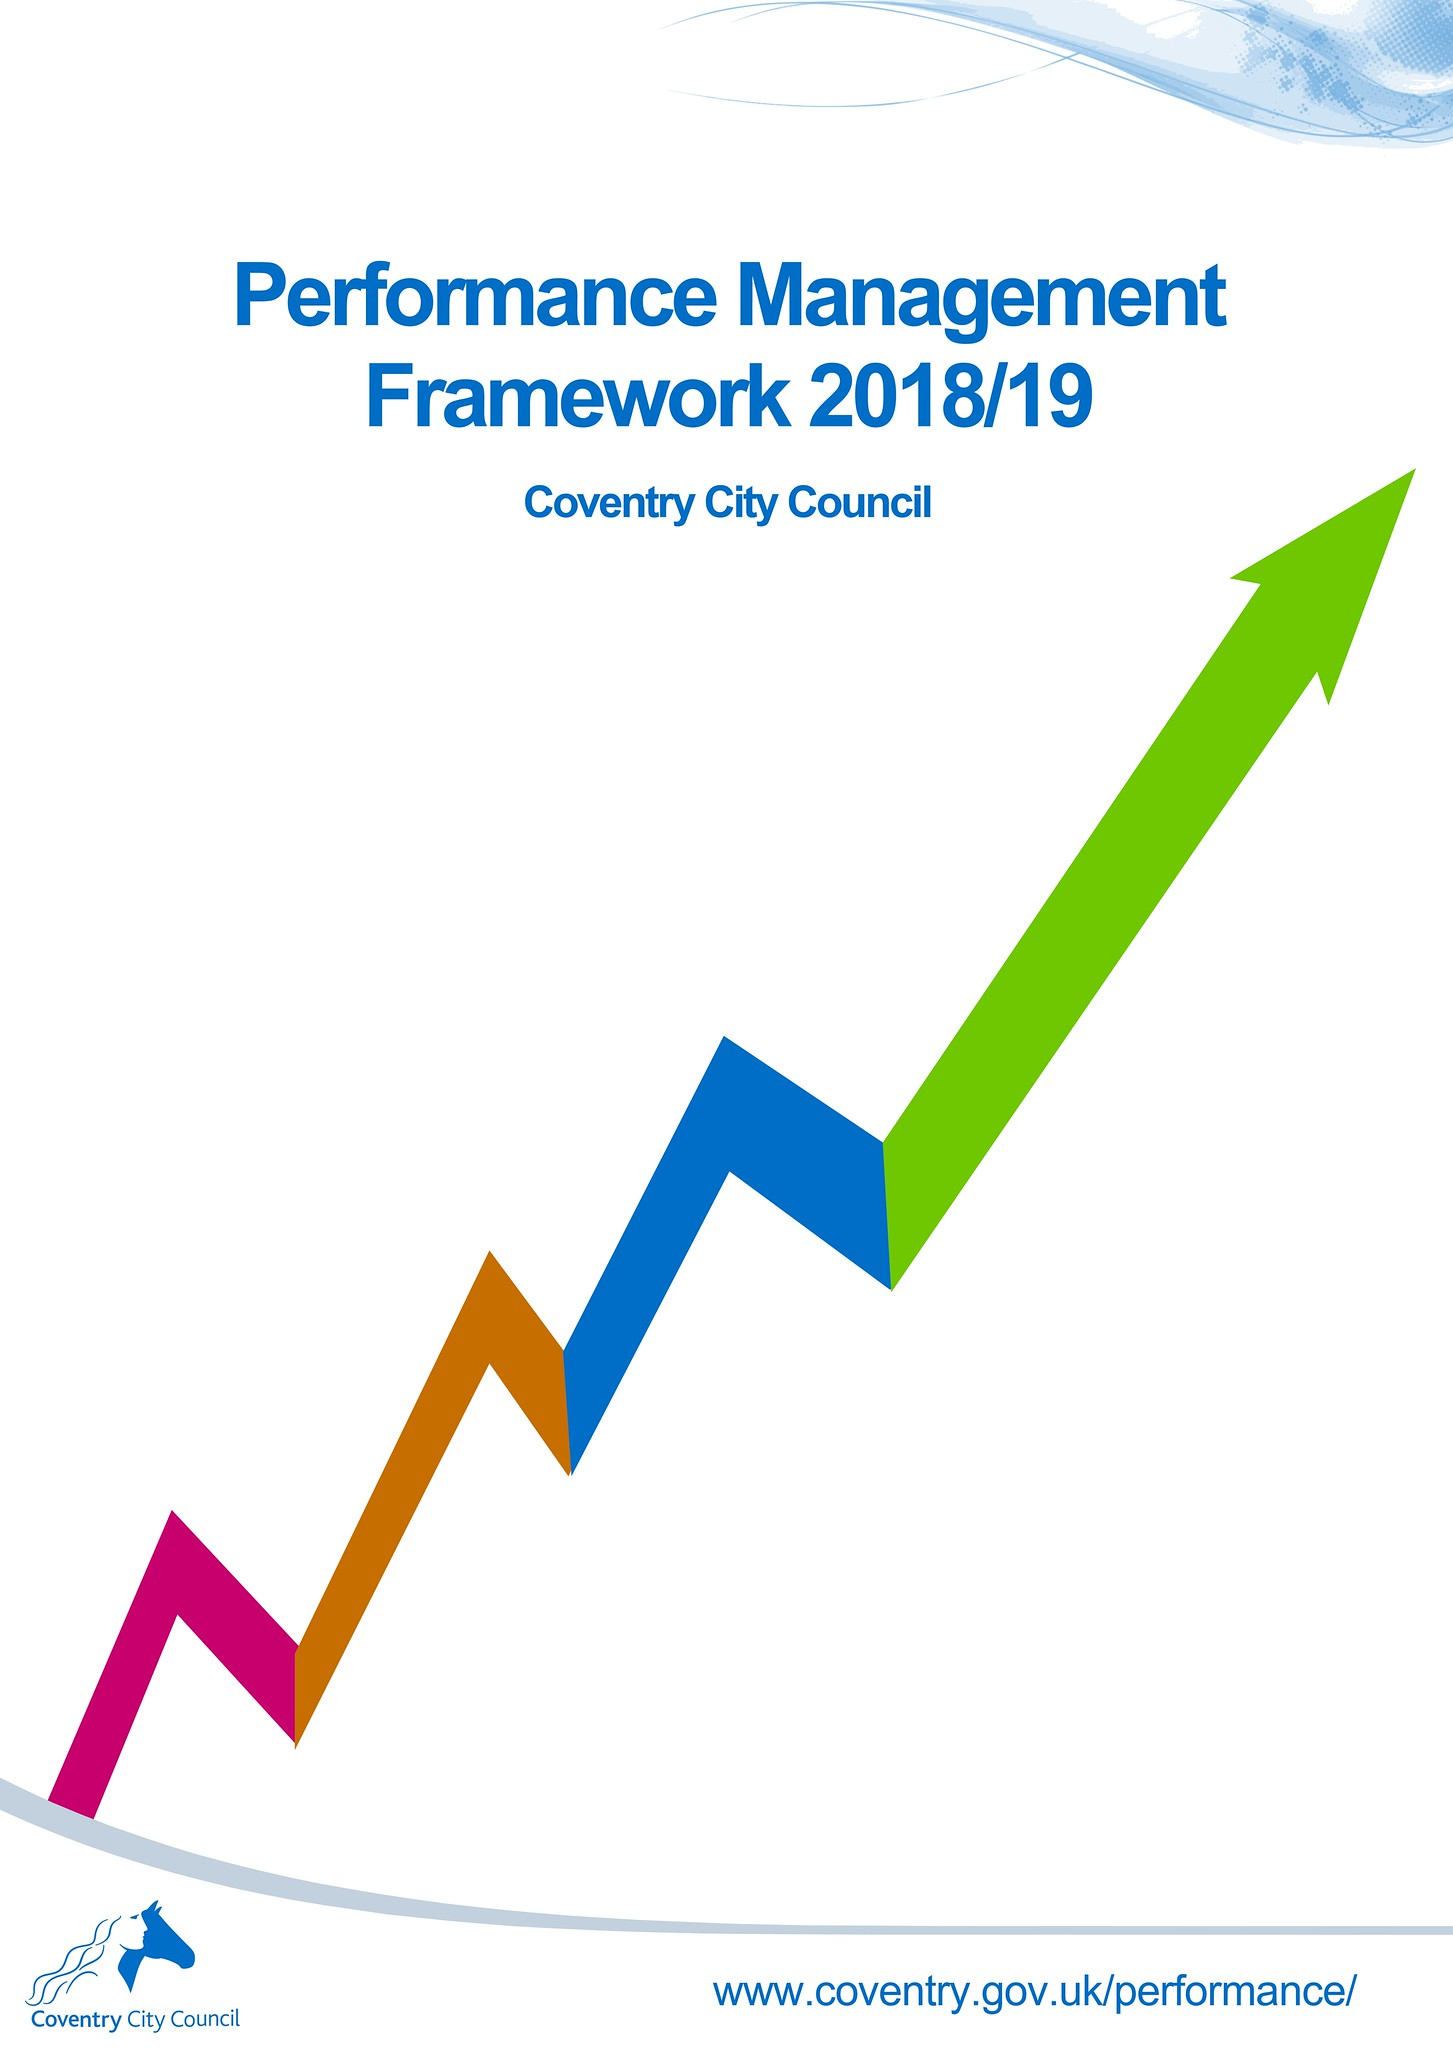 Coventry City Council's Performance Management Framework https://smarturl.it/PMF